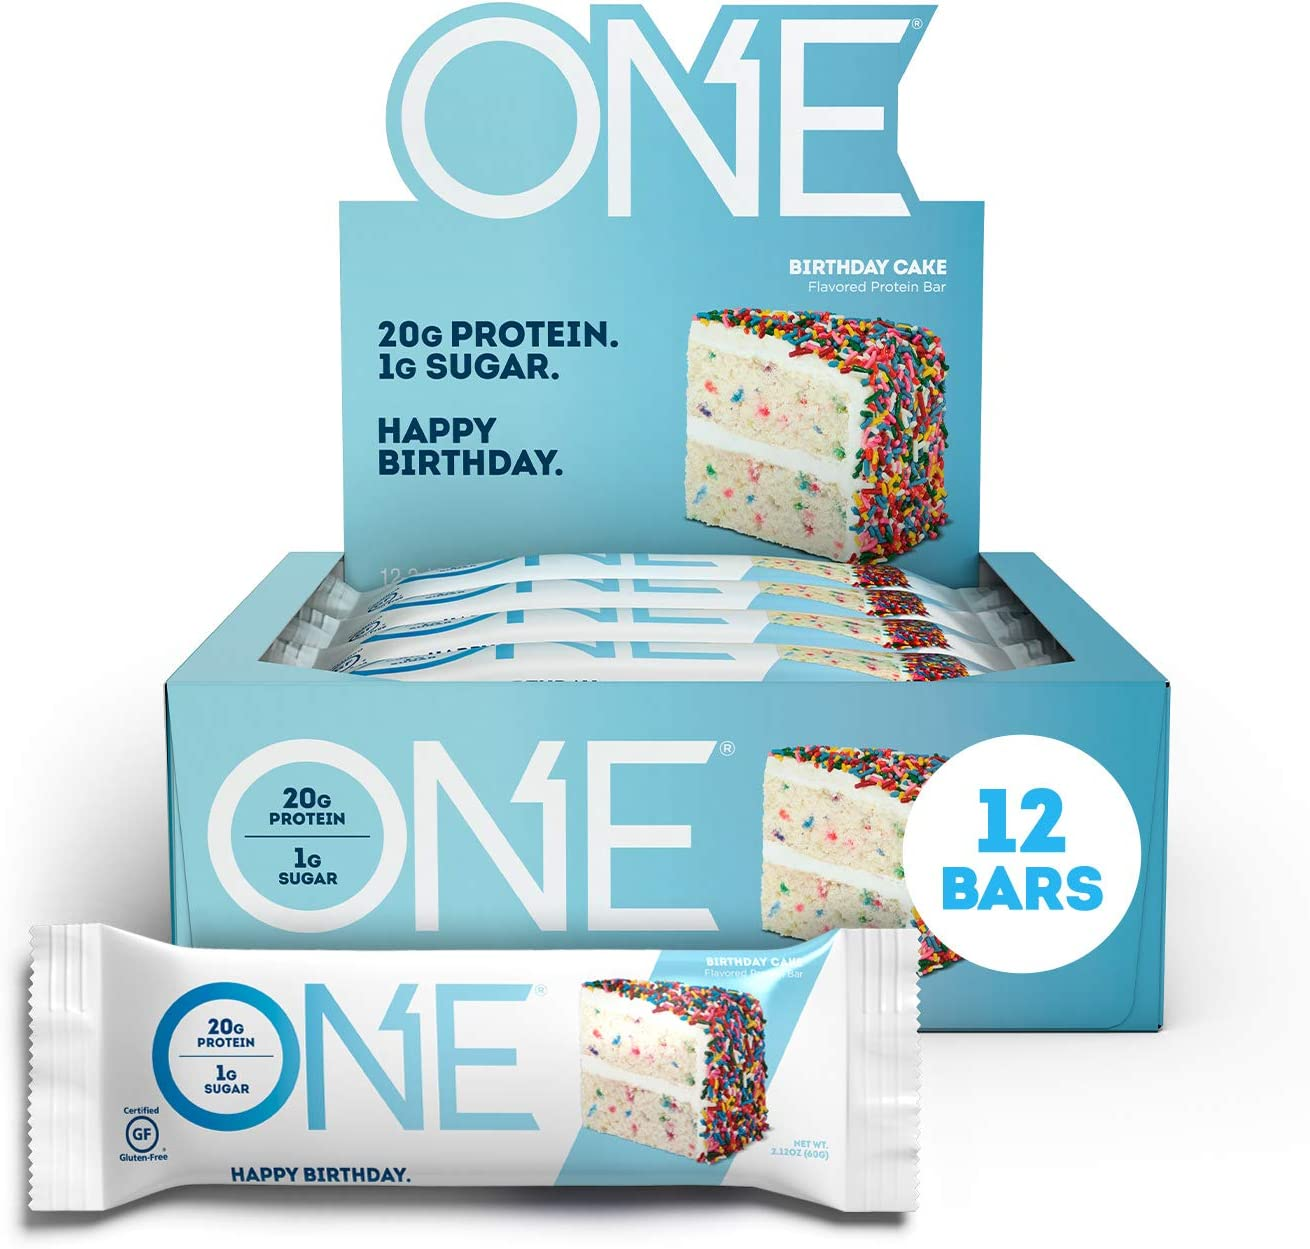 ONE Protein Bars, Birthday Cake, Gluten Free Protein Bars with 20g Protein and only 1g Sugar, Guilt-Free Snacking for High Protein Diets, 2.12 oz 12 Pack